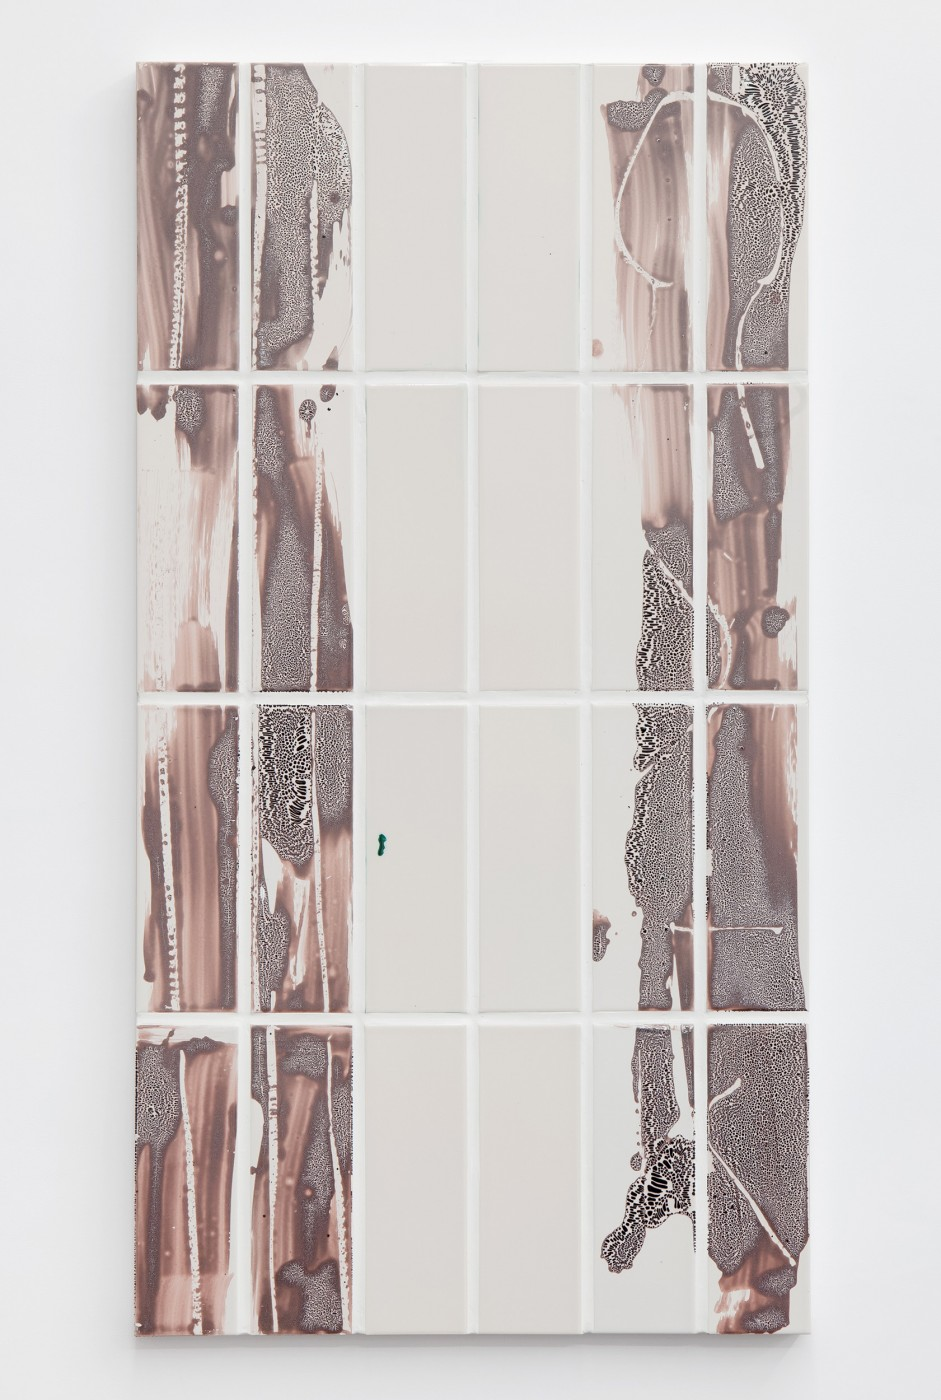 Tours <I>Untitled</I>, 2014  Glazed ceramics, ceramic transfer, aluminium  